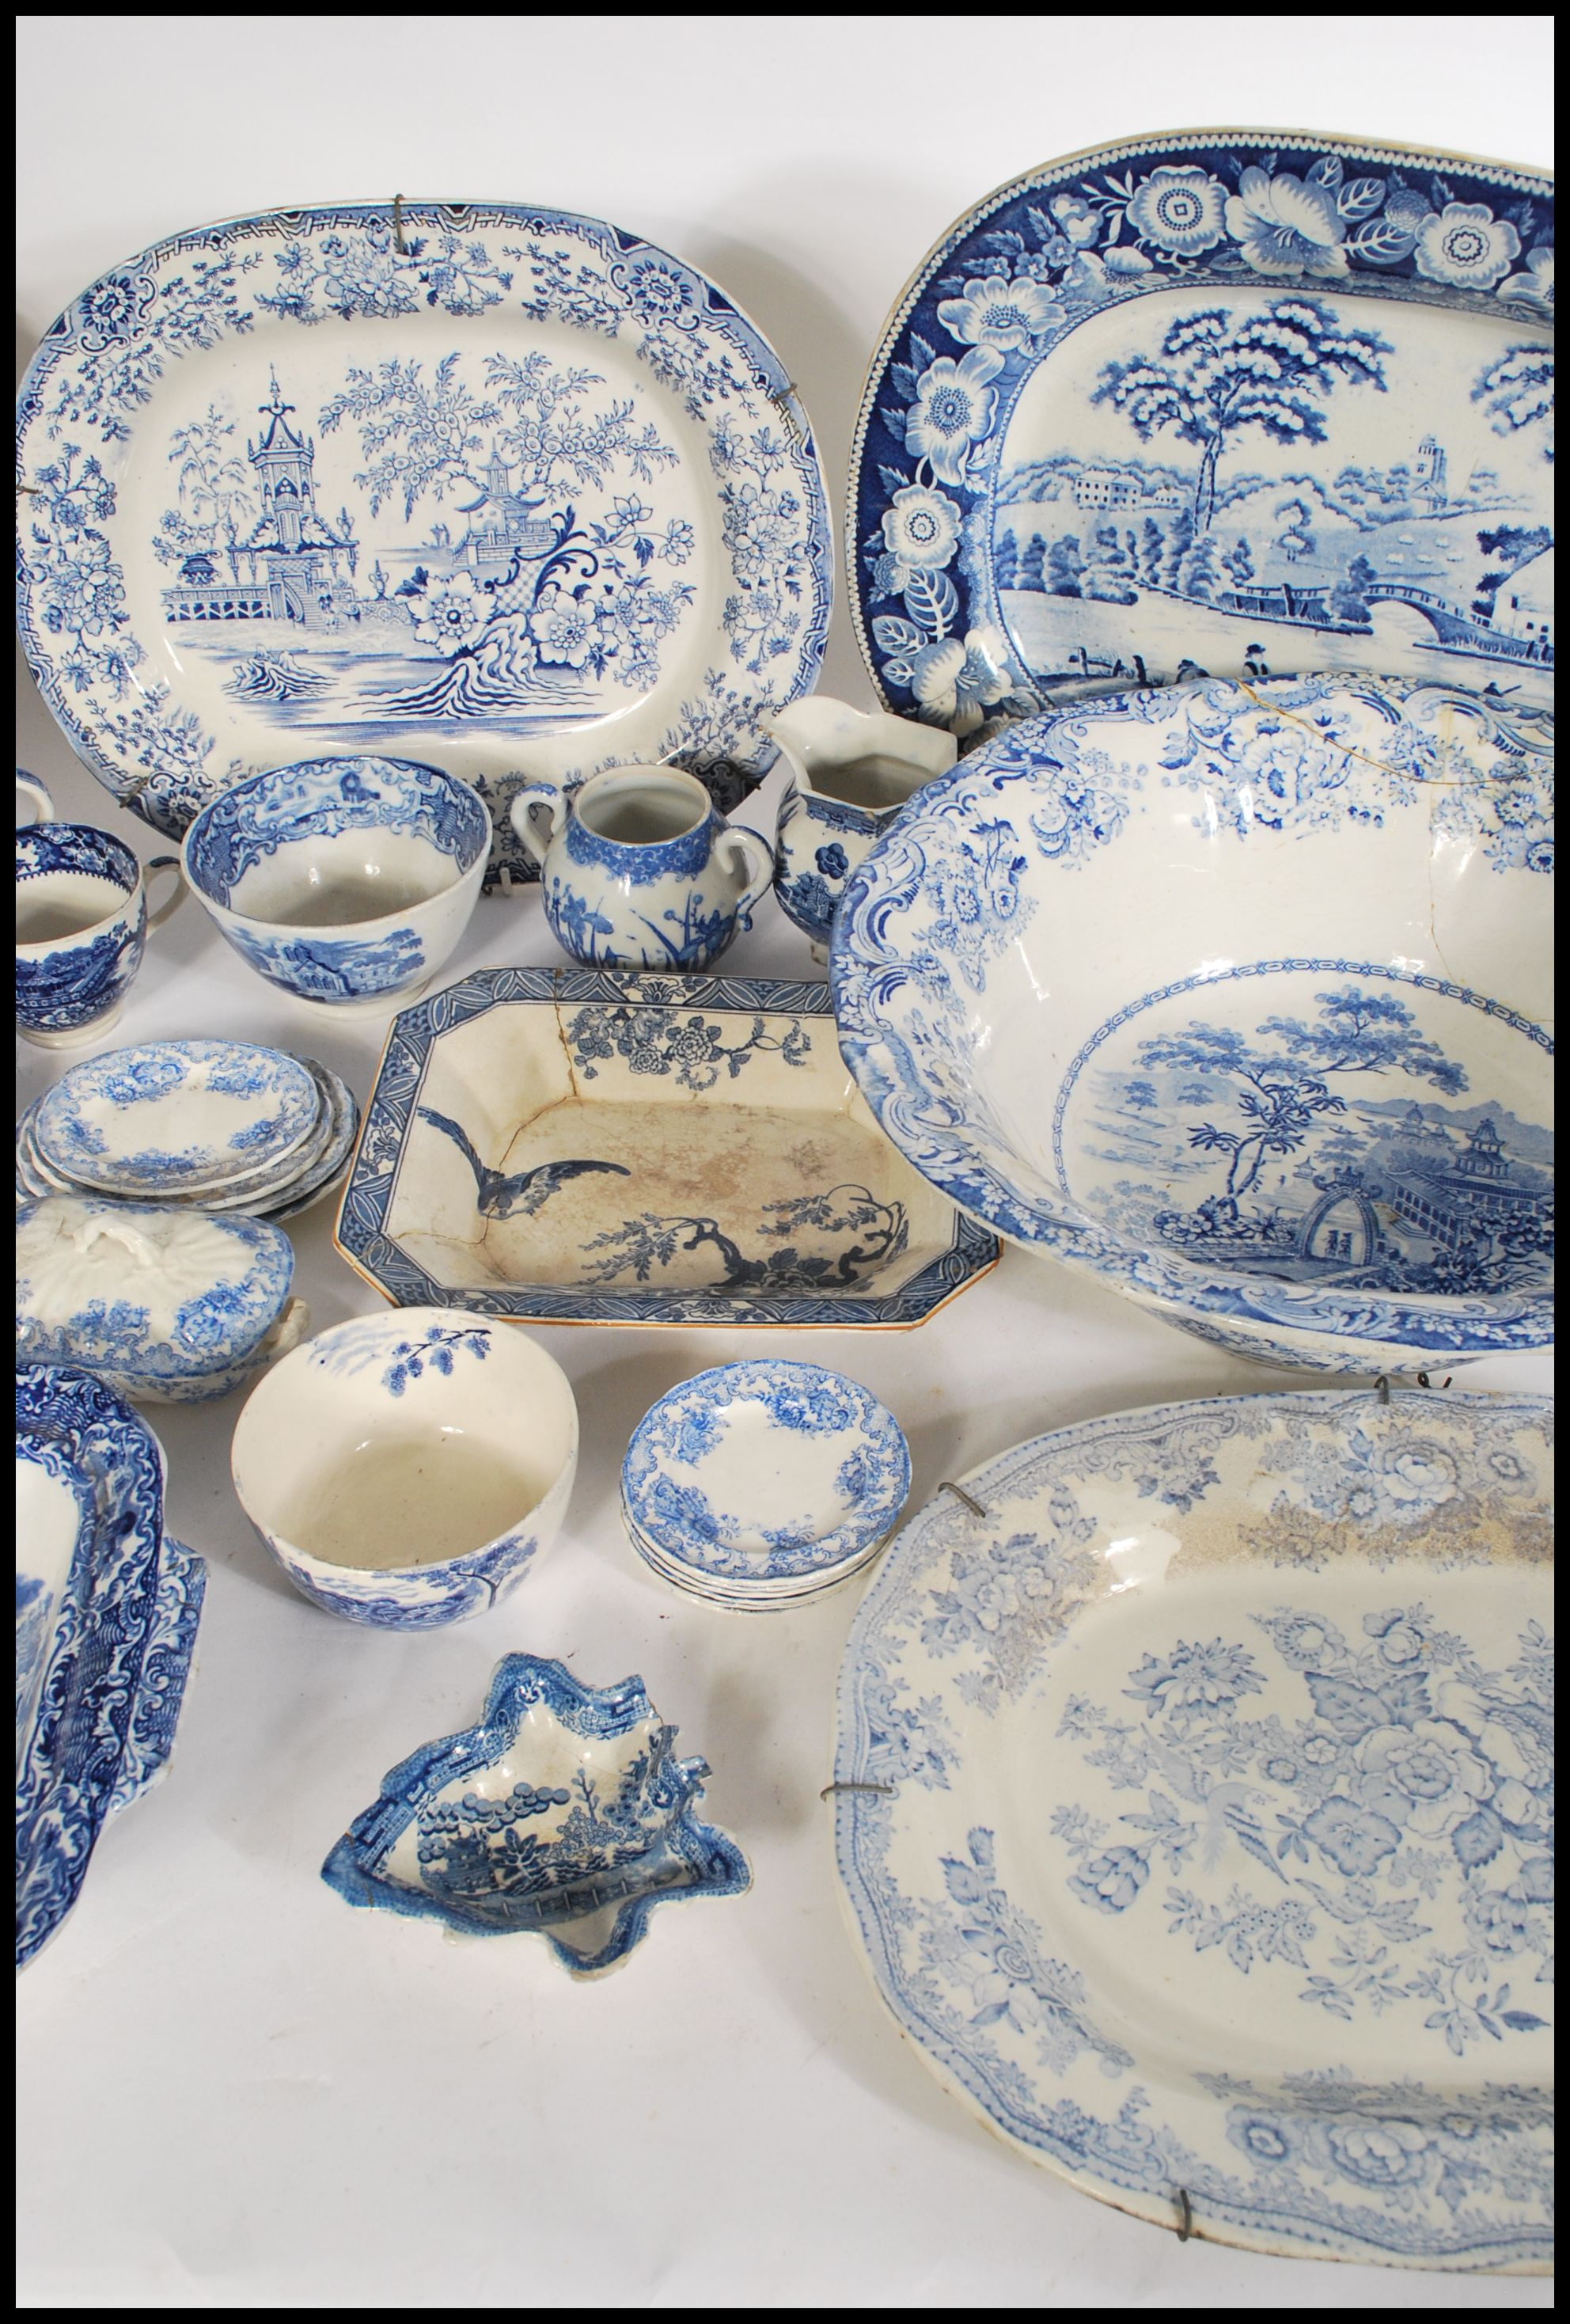 Lot 24 - A selection of late 19th/ early 20th century blue and white ceramic wares to include a selection